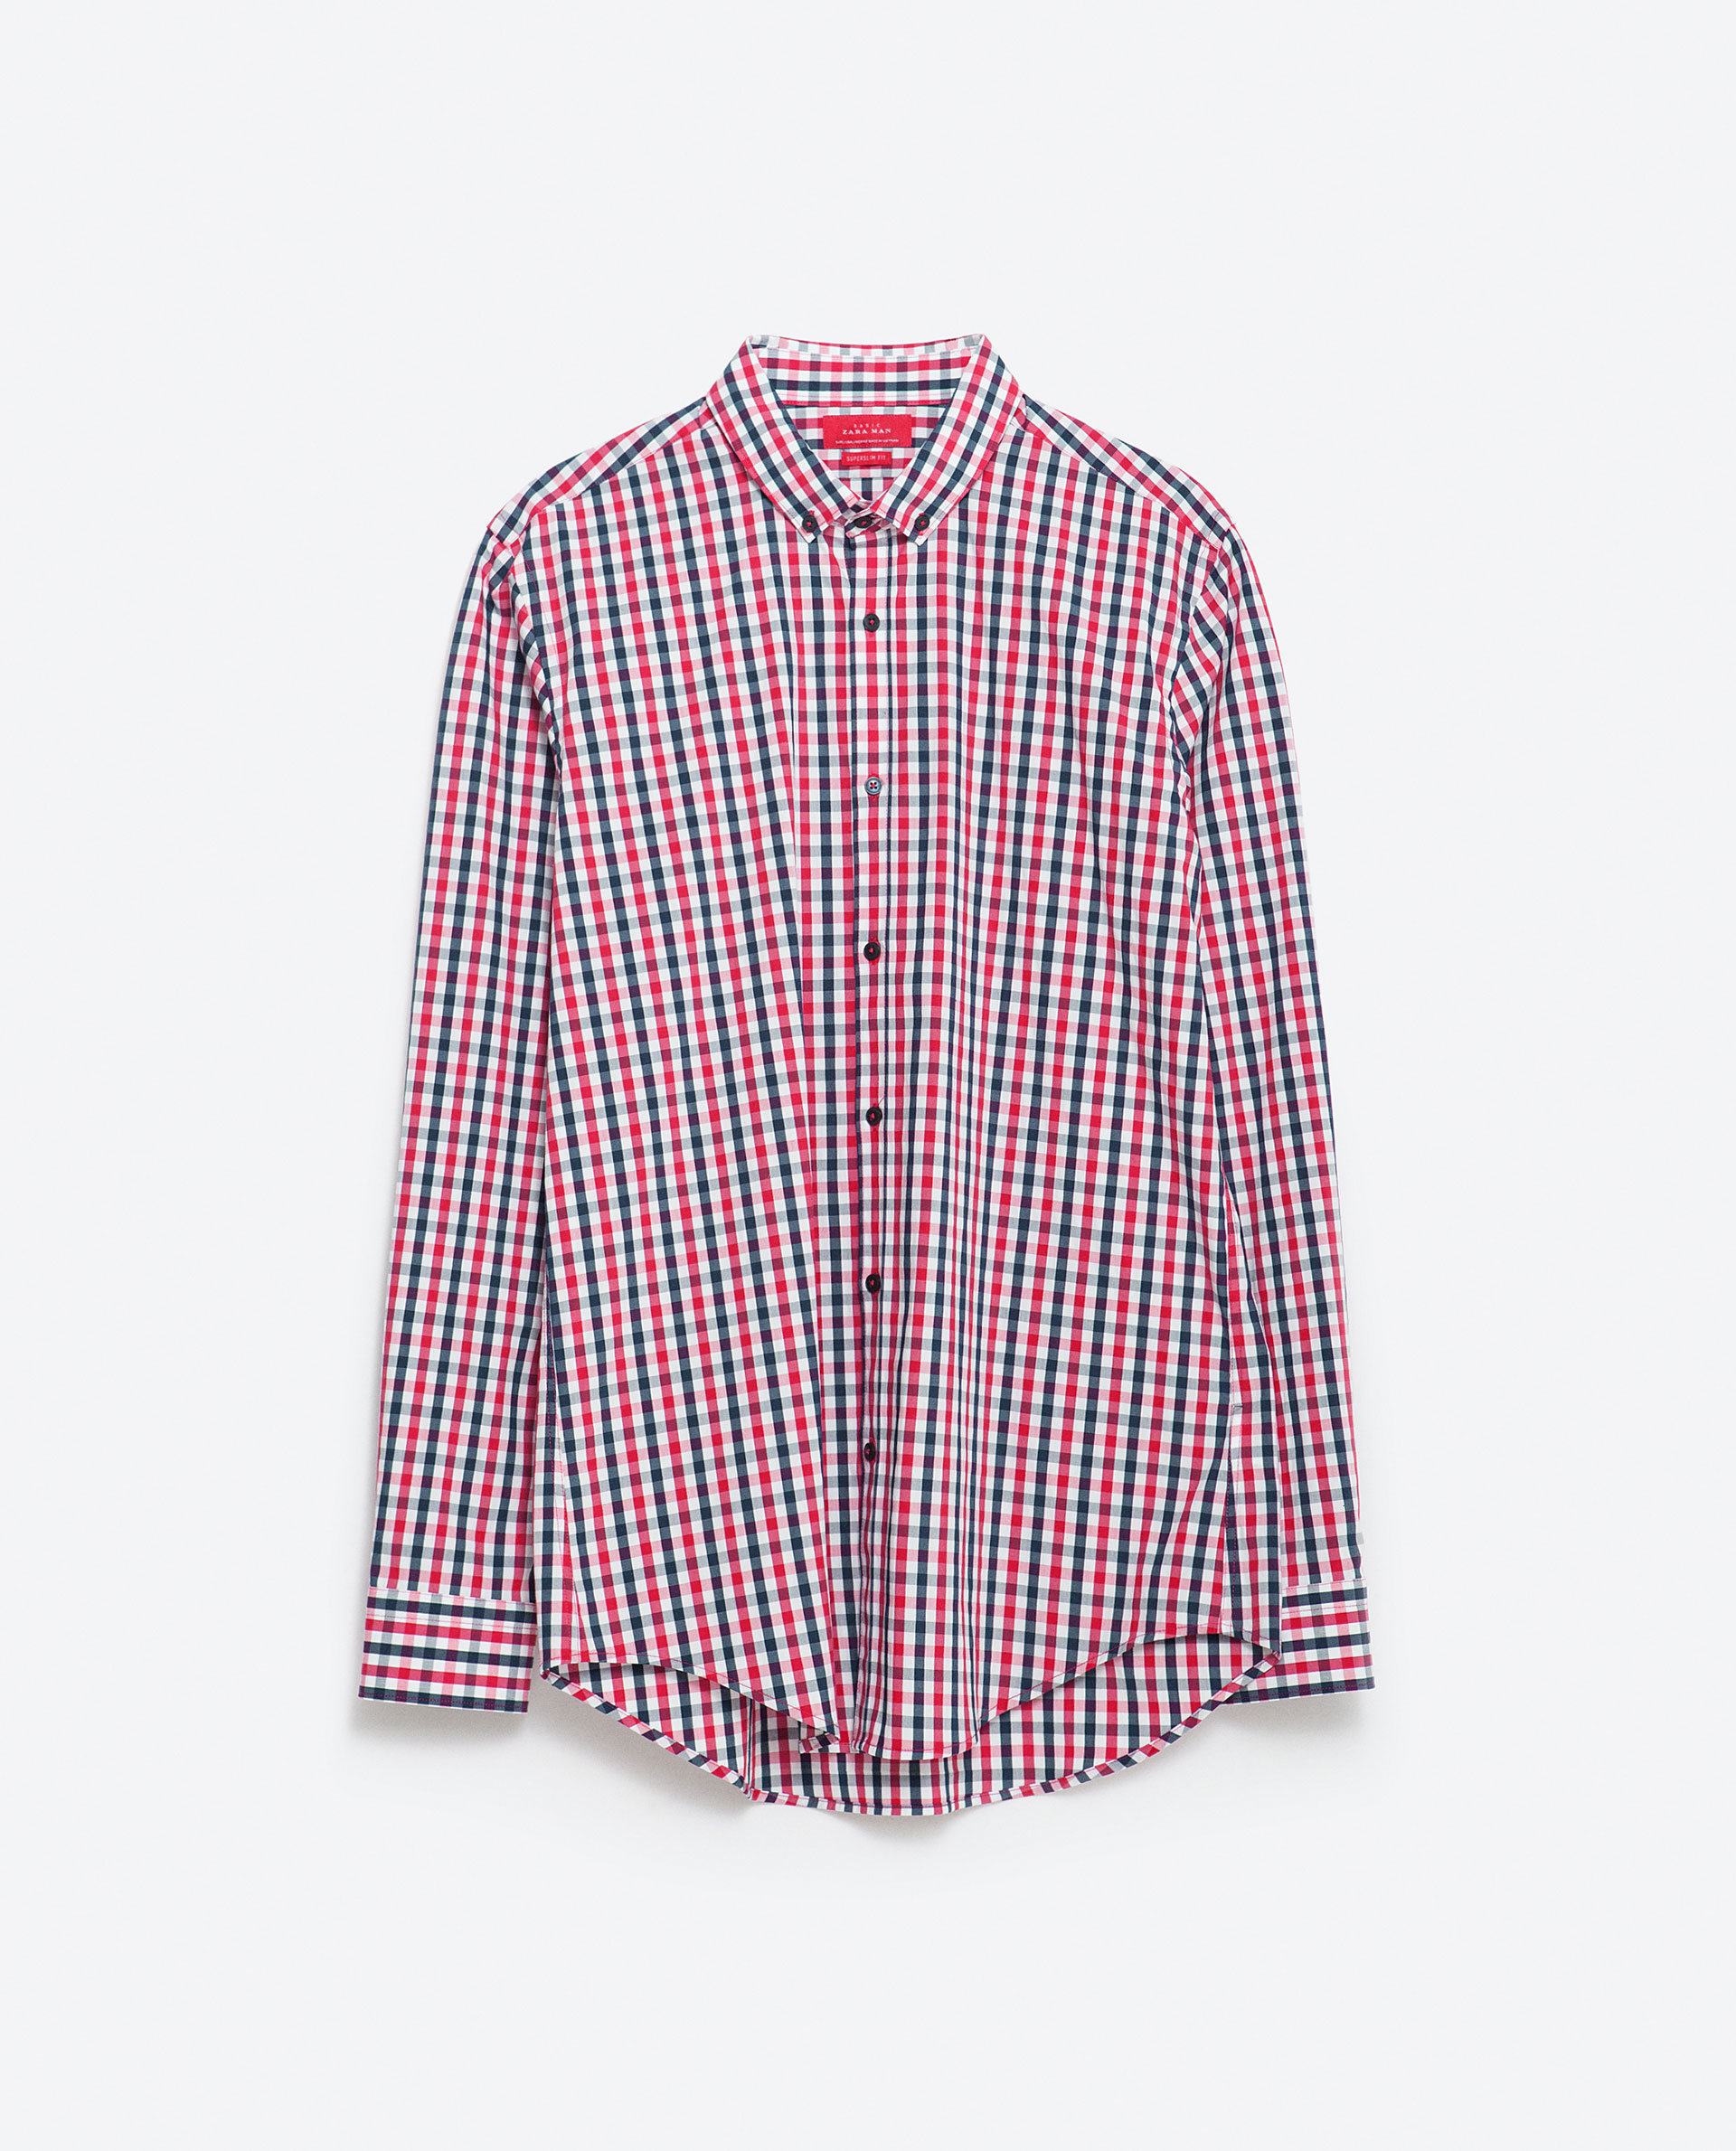 Zara super slim fit checked shirt in red for men lyst for Super slim dress shirts